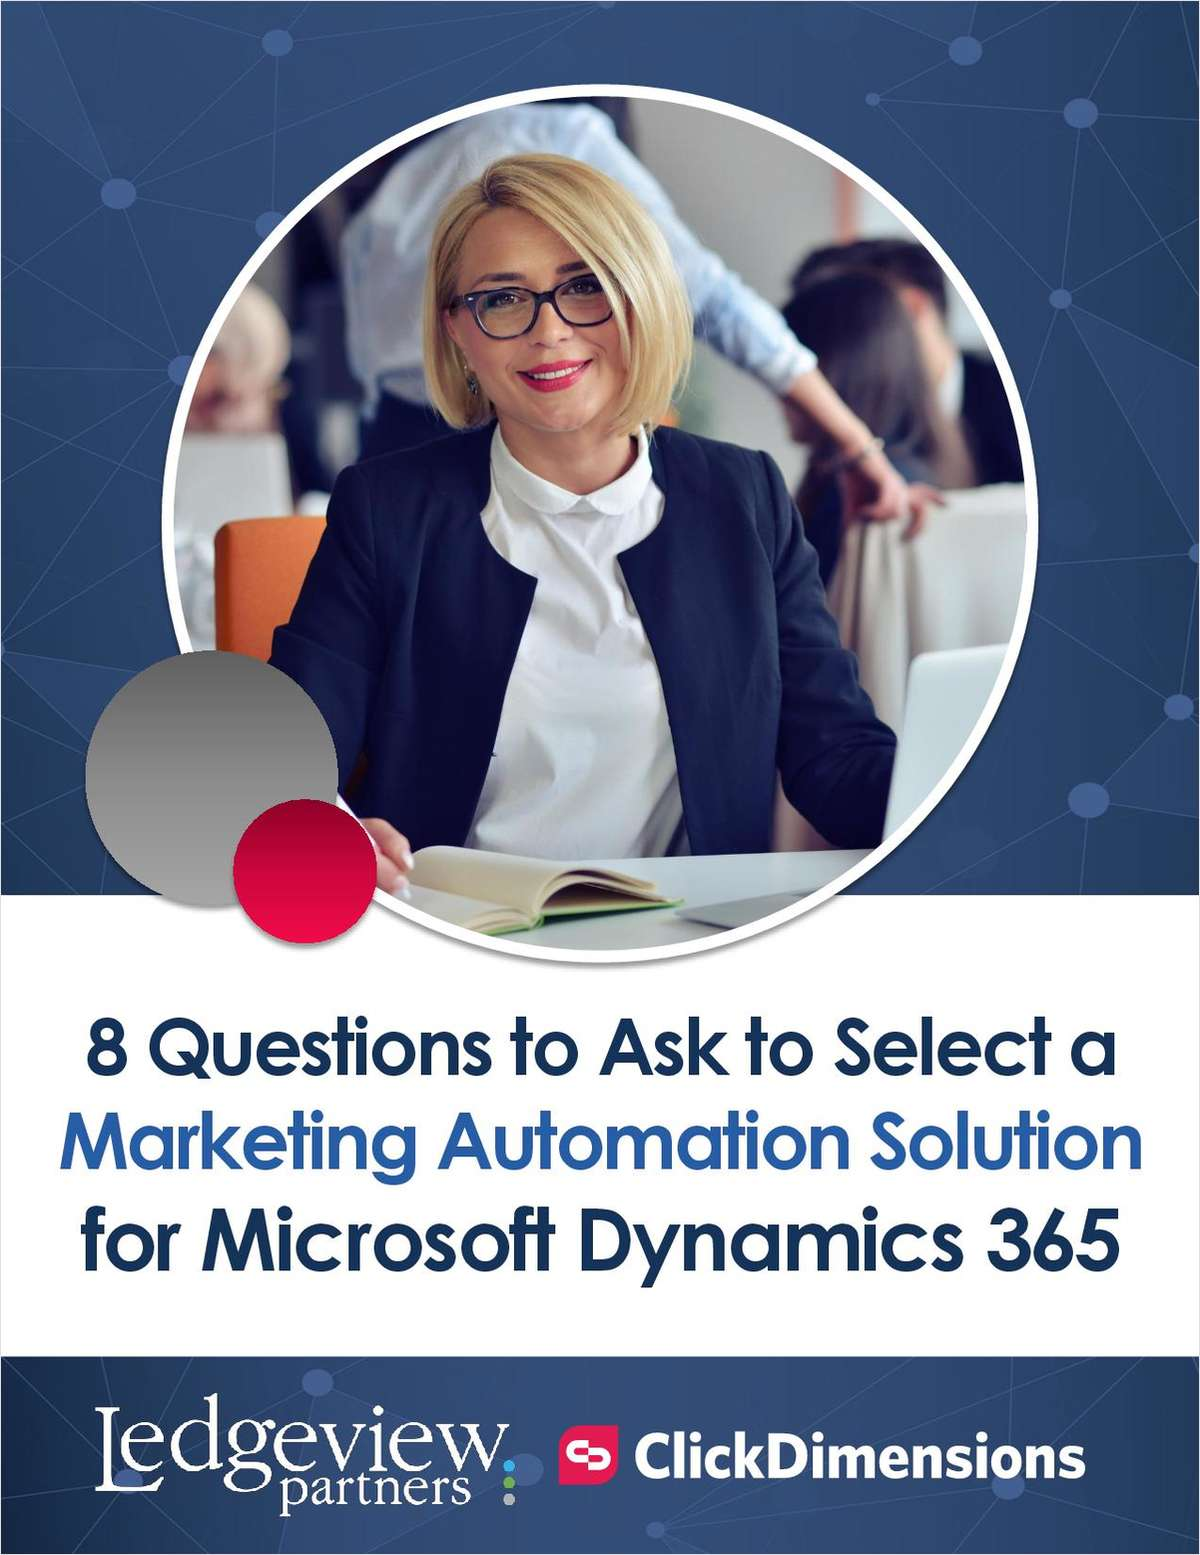 How to Select a Marketing Automation Solution for Microsoft Dynamics 365